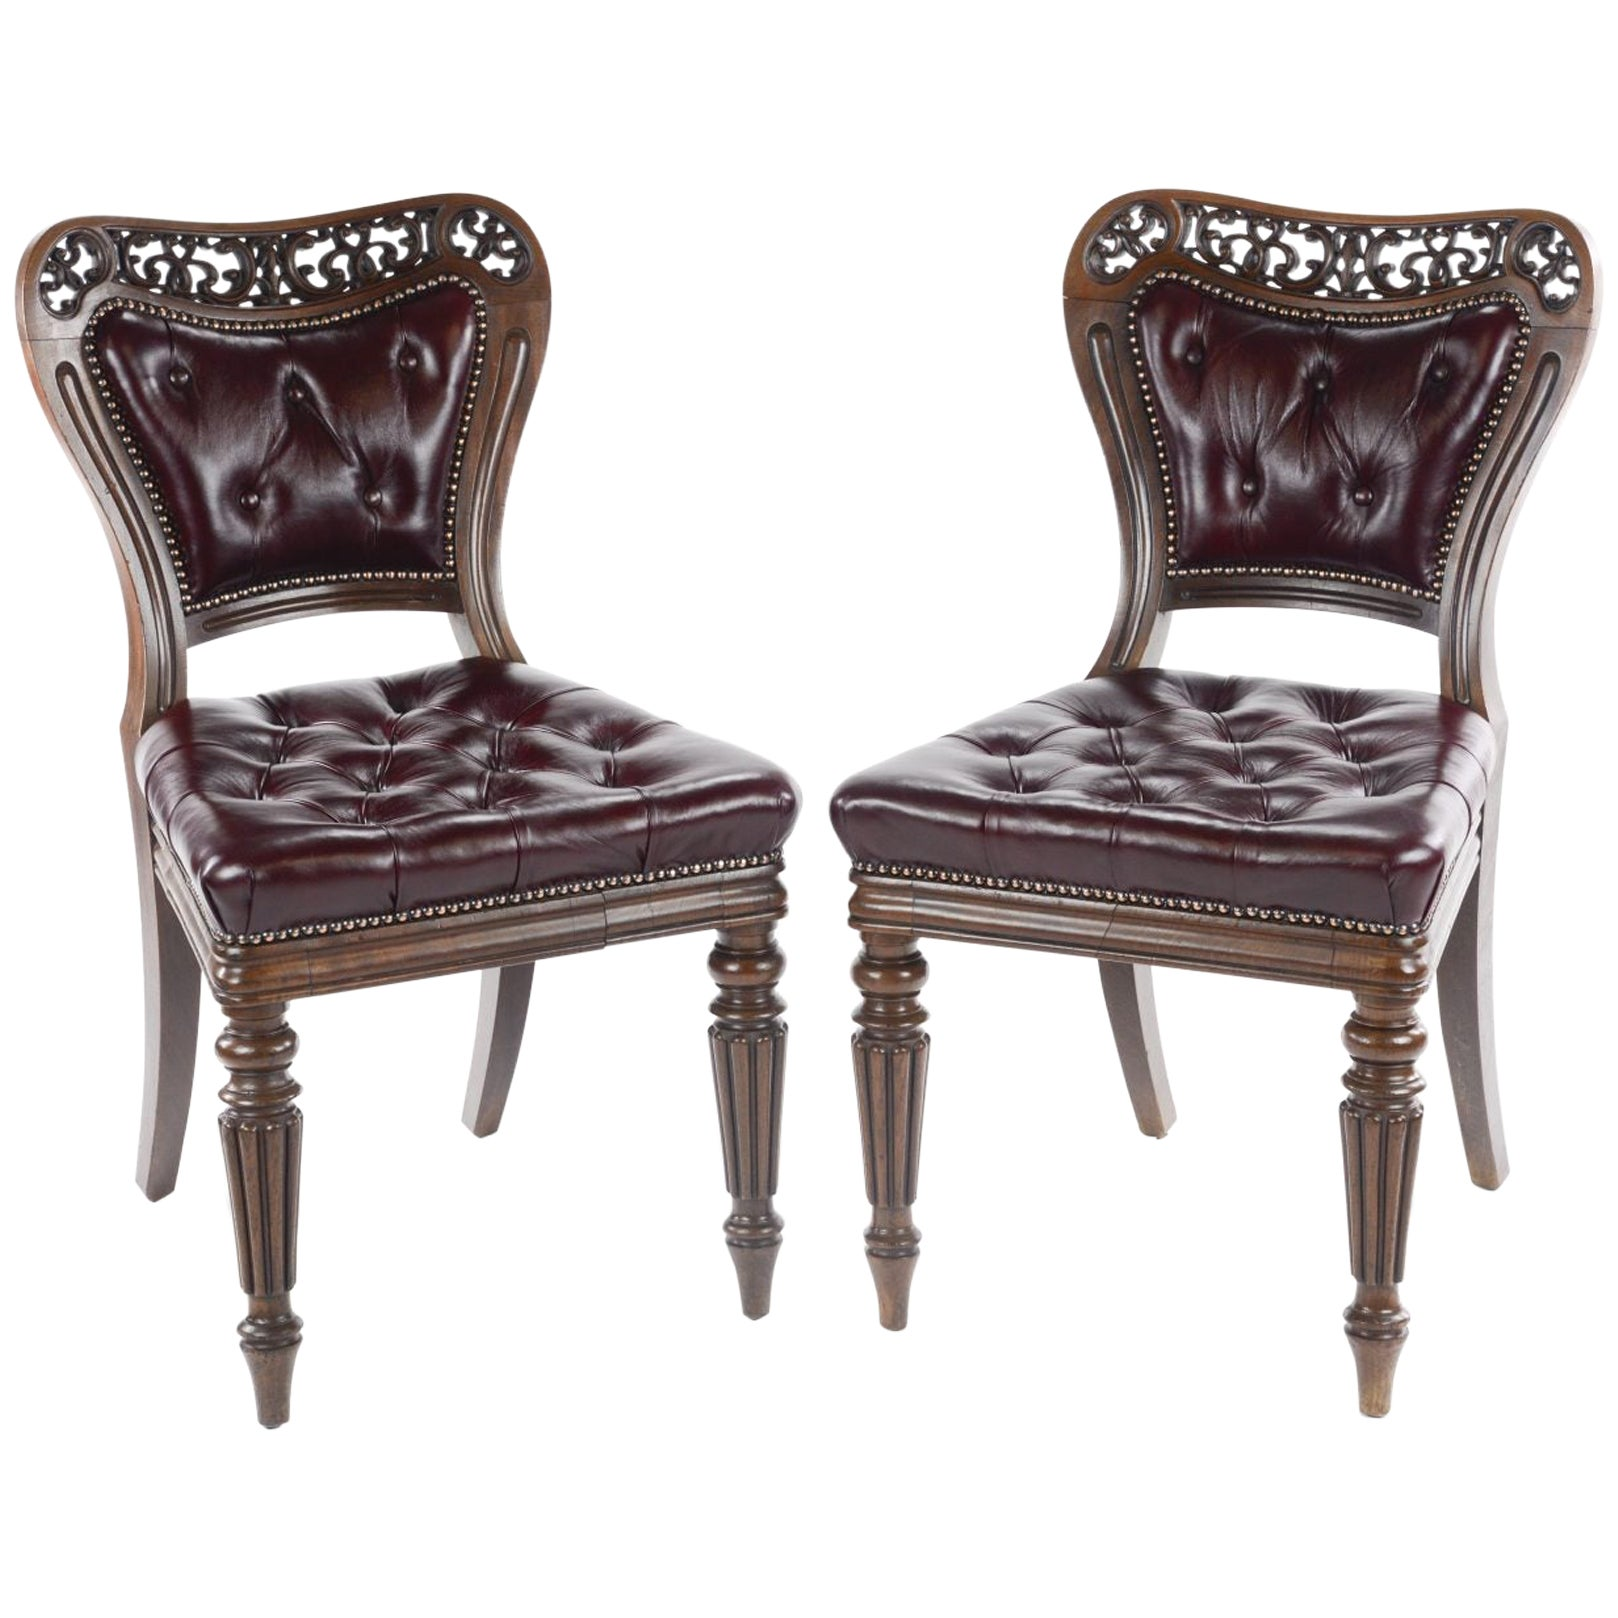 Pair of Very Fine George IV Library Chairs, Firmly Attributed to Gillows